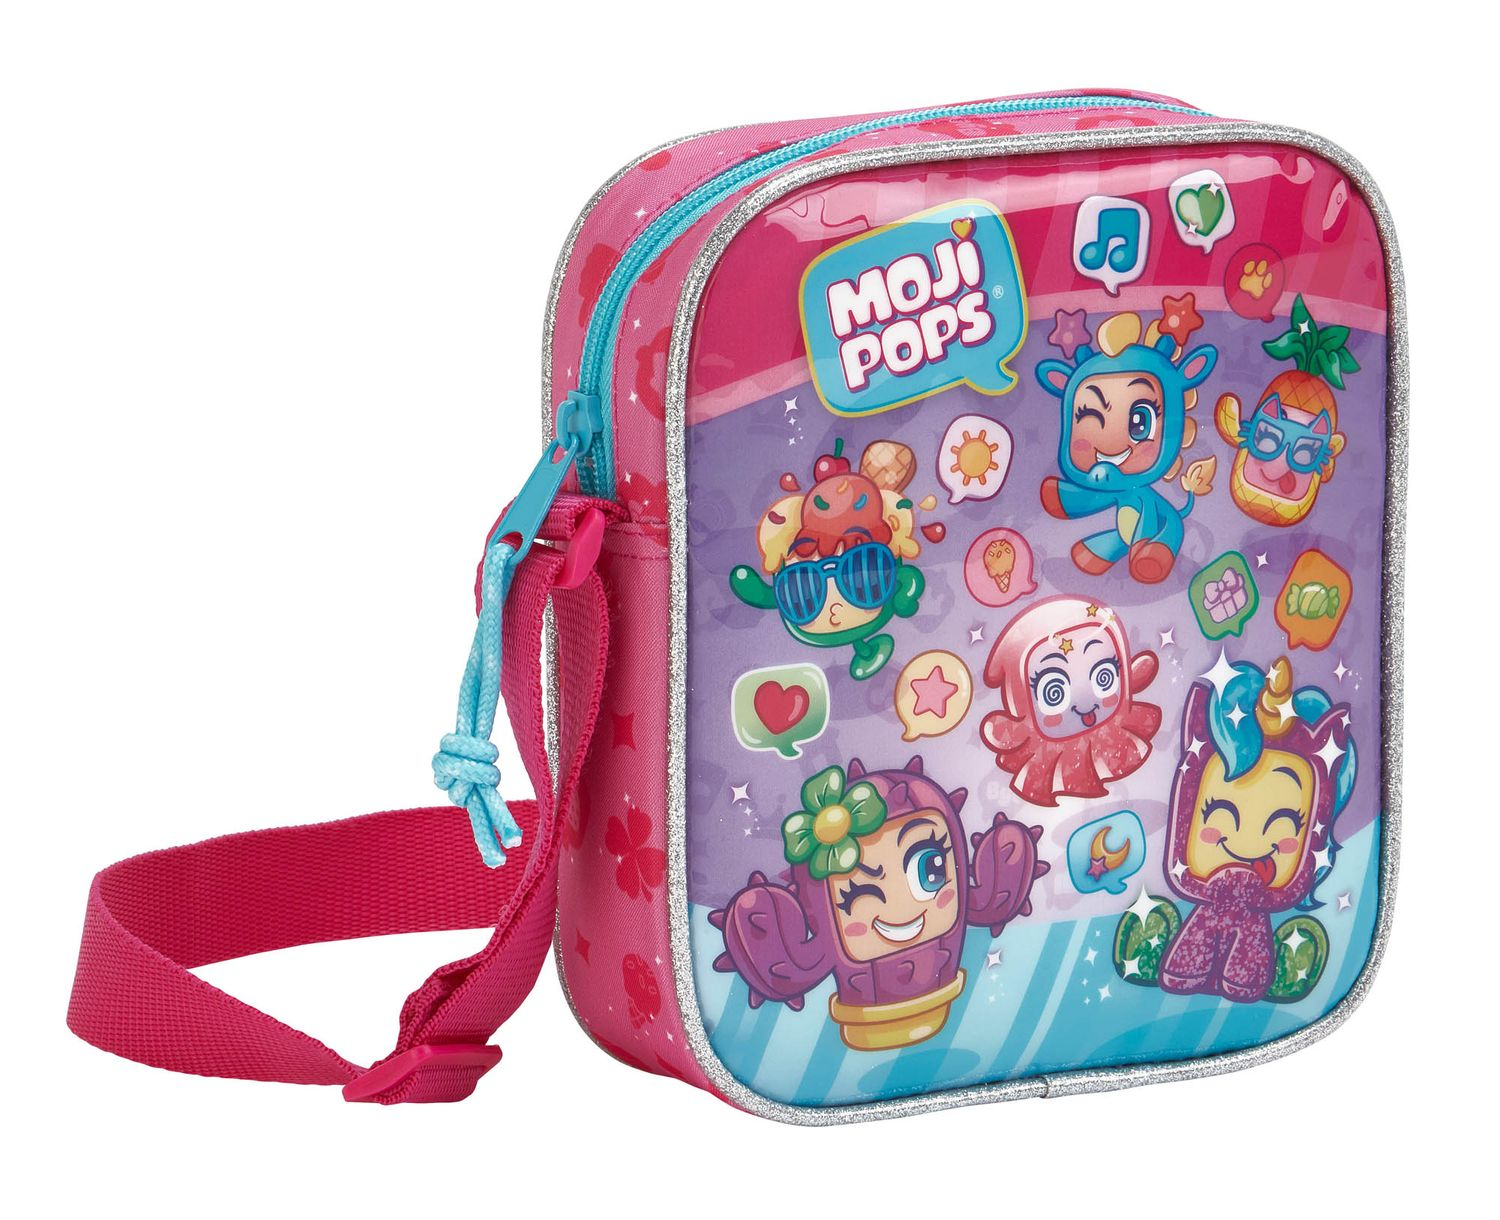 MOJIPOPS Mini Shoulder Bag 18cm – image 1